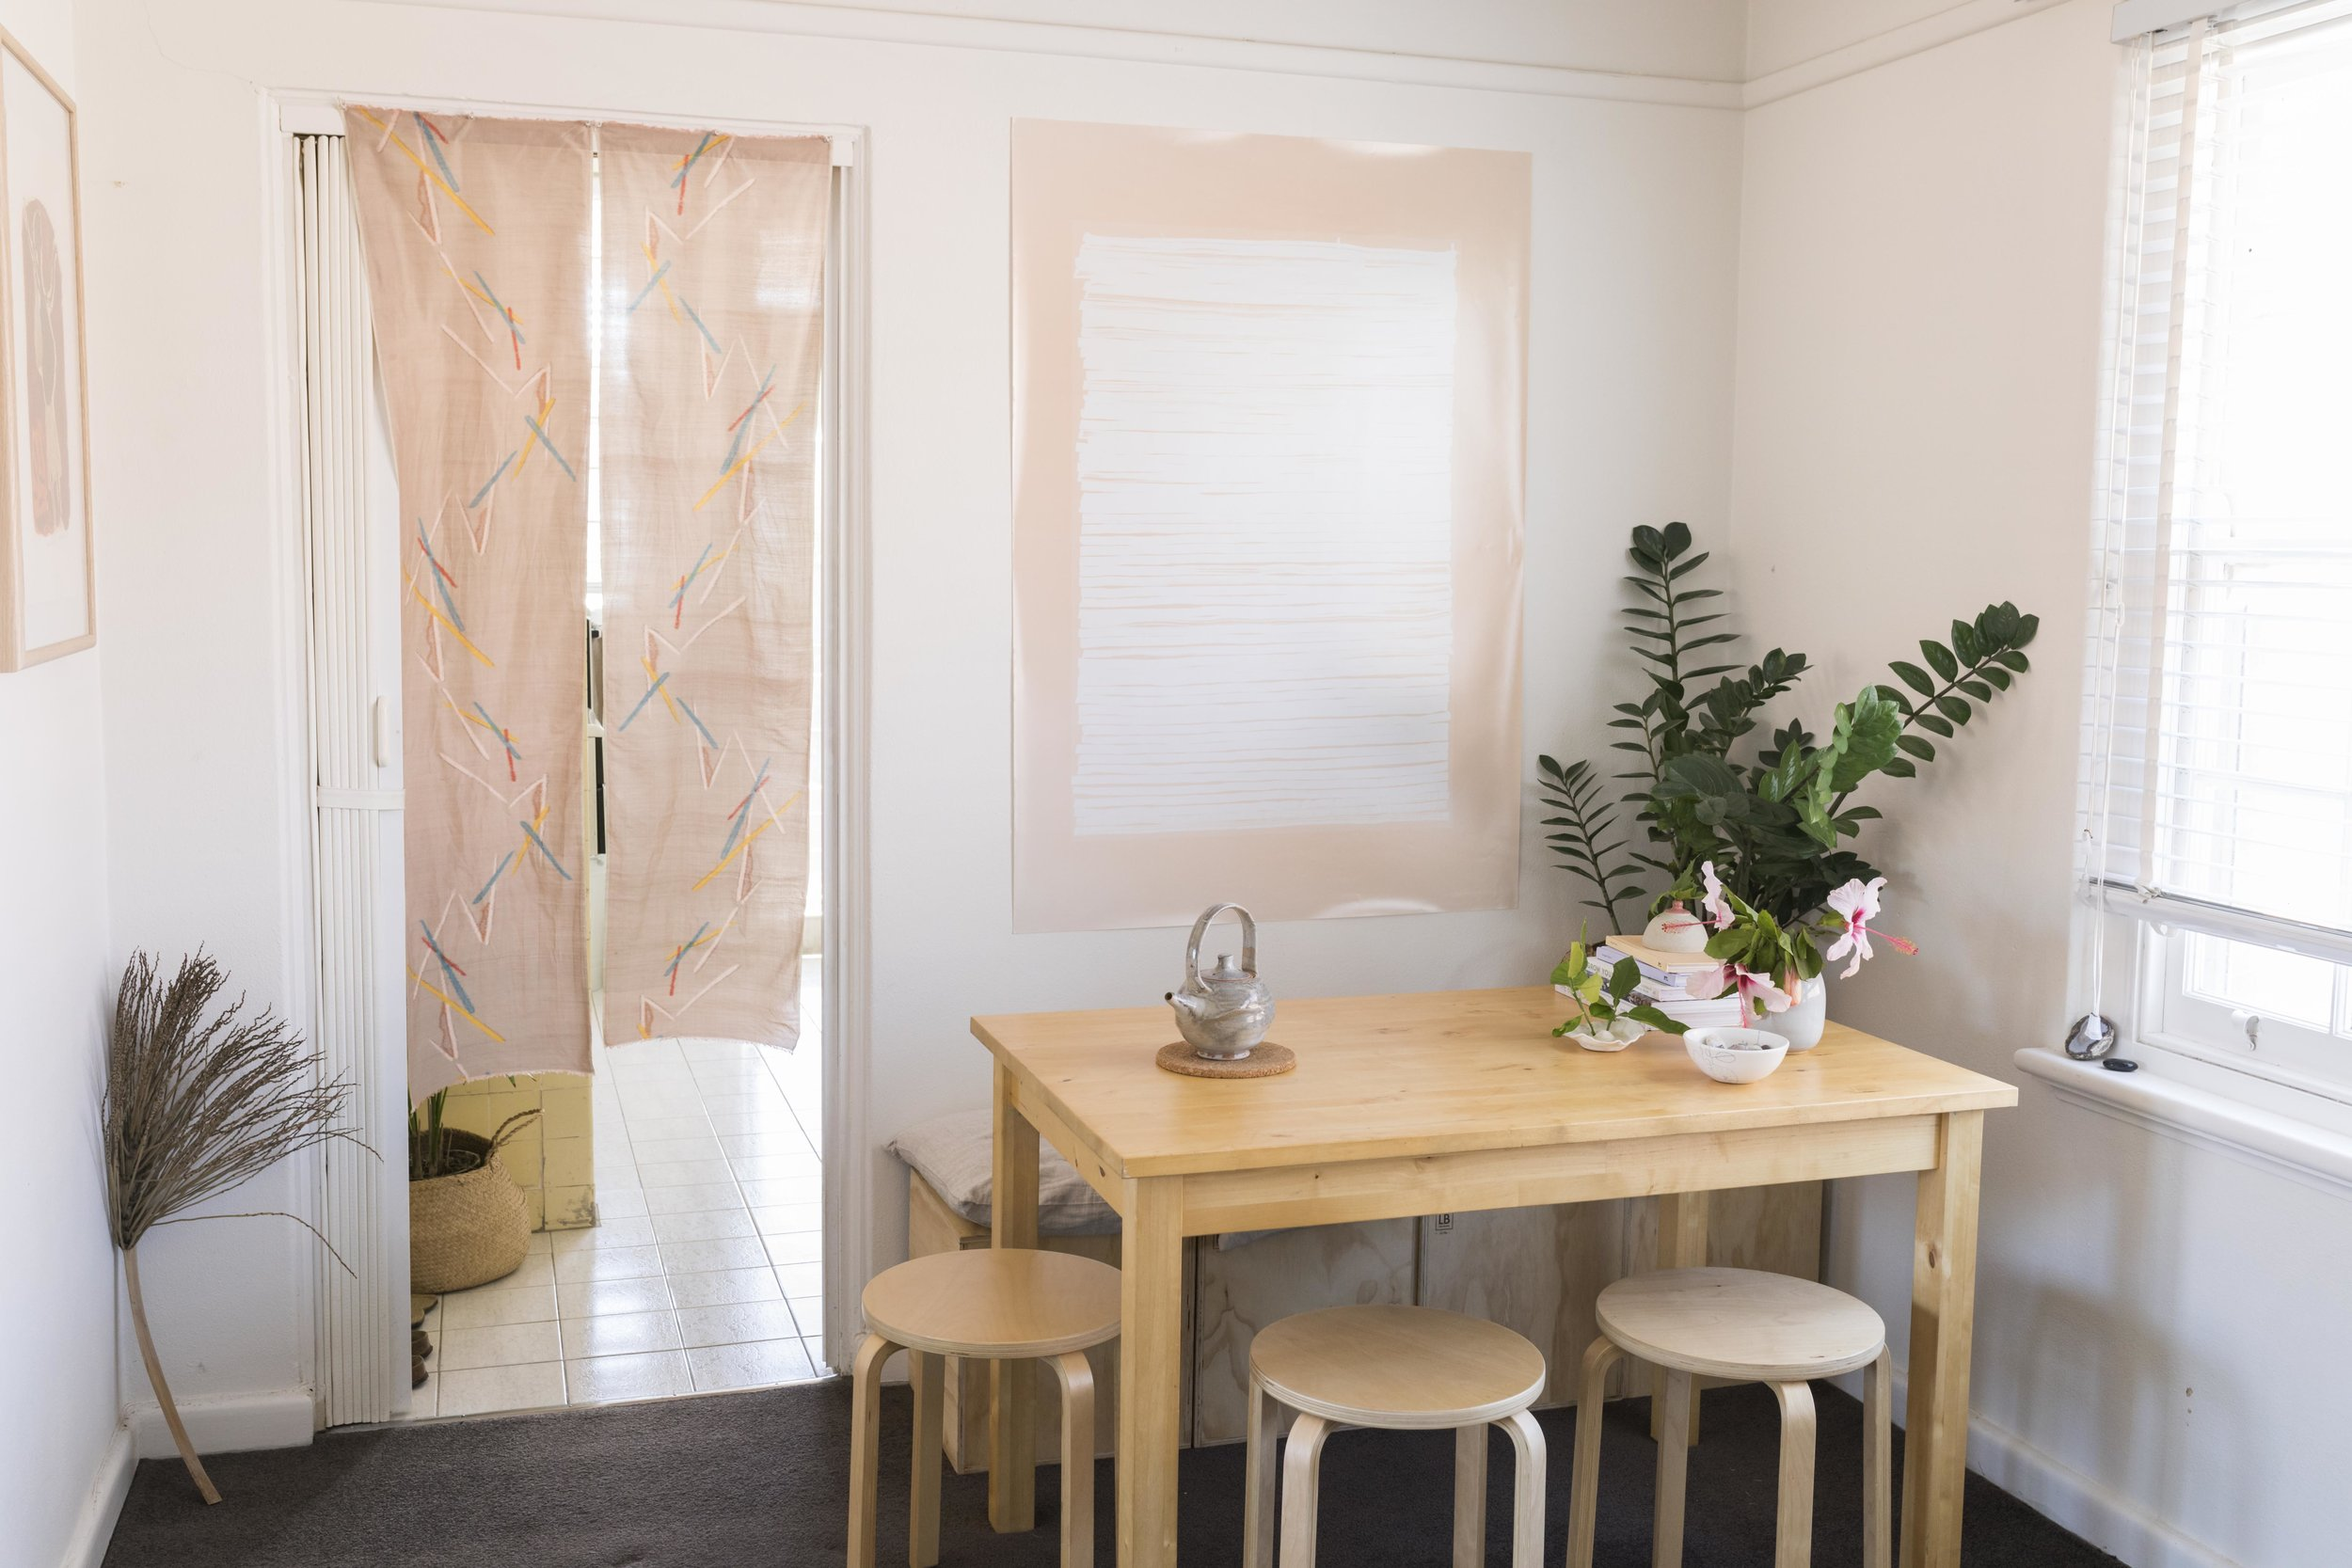 Belinda Evans' rented apartment in Brighton, Melbourne. Photo by Dan Soderstrom for Rented Space.